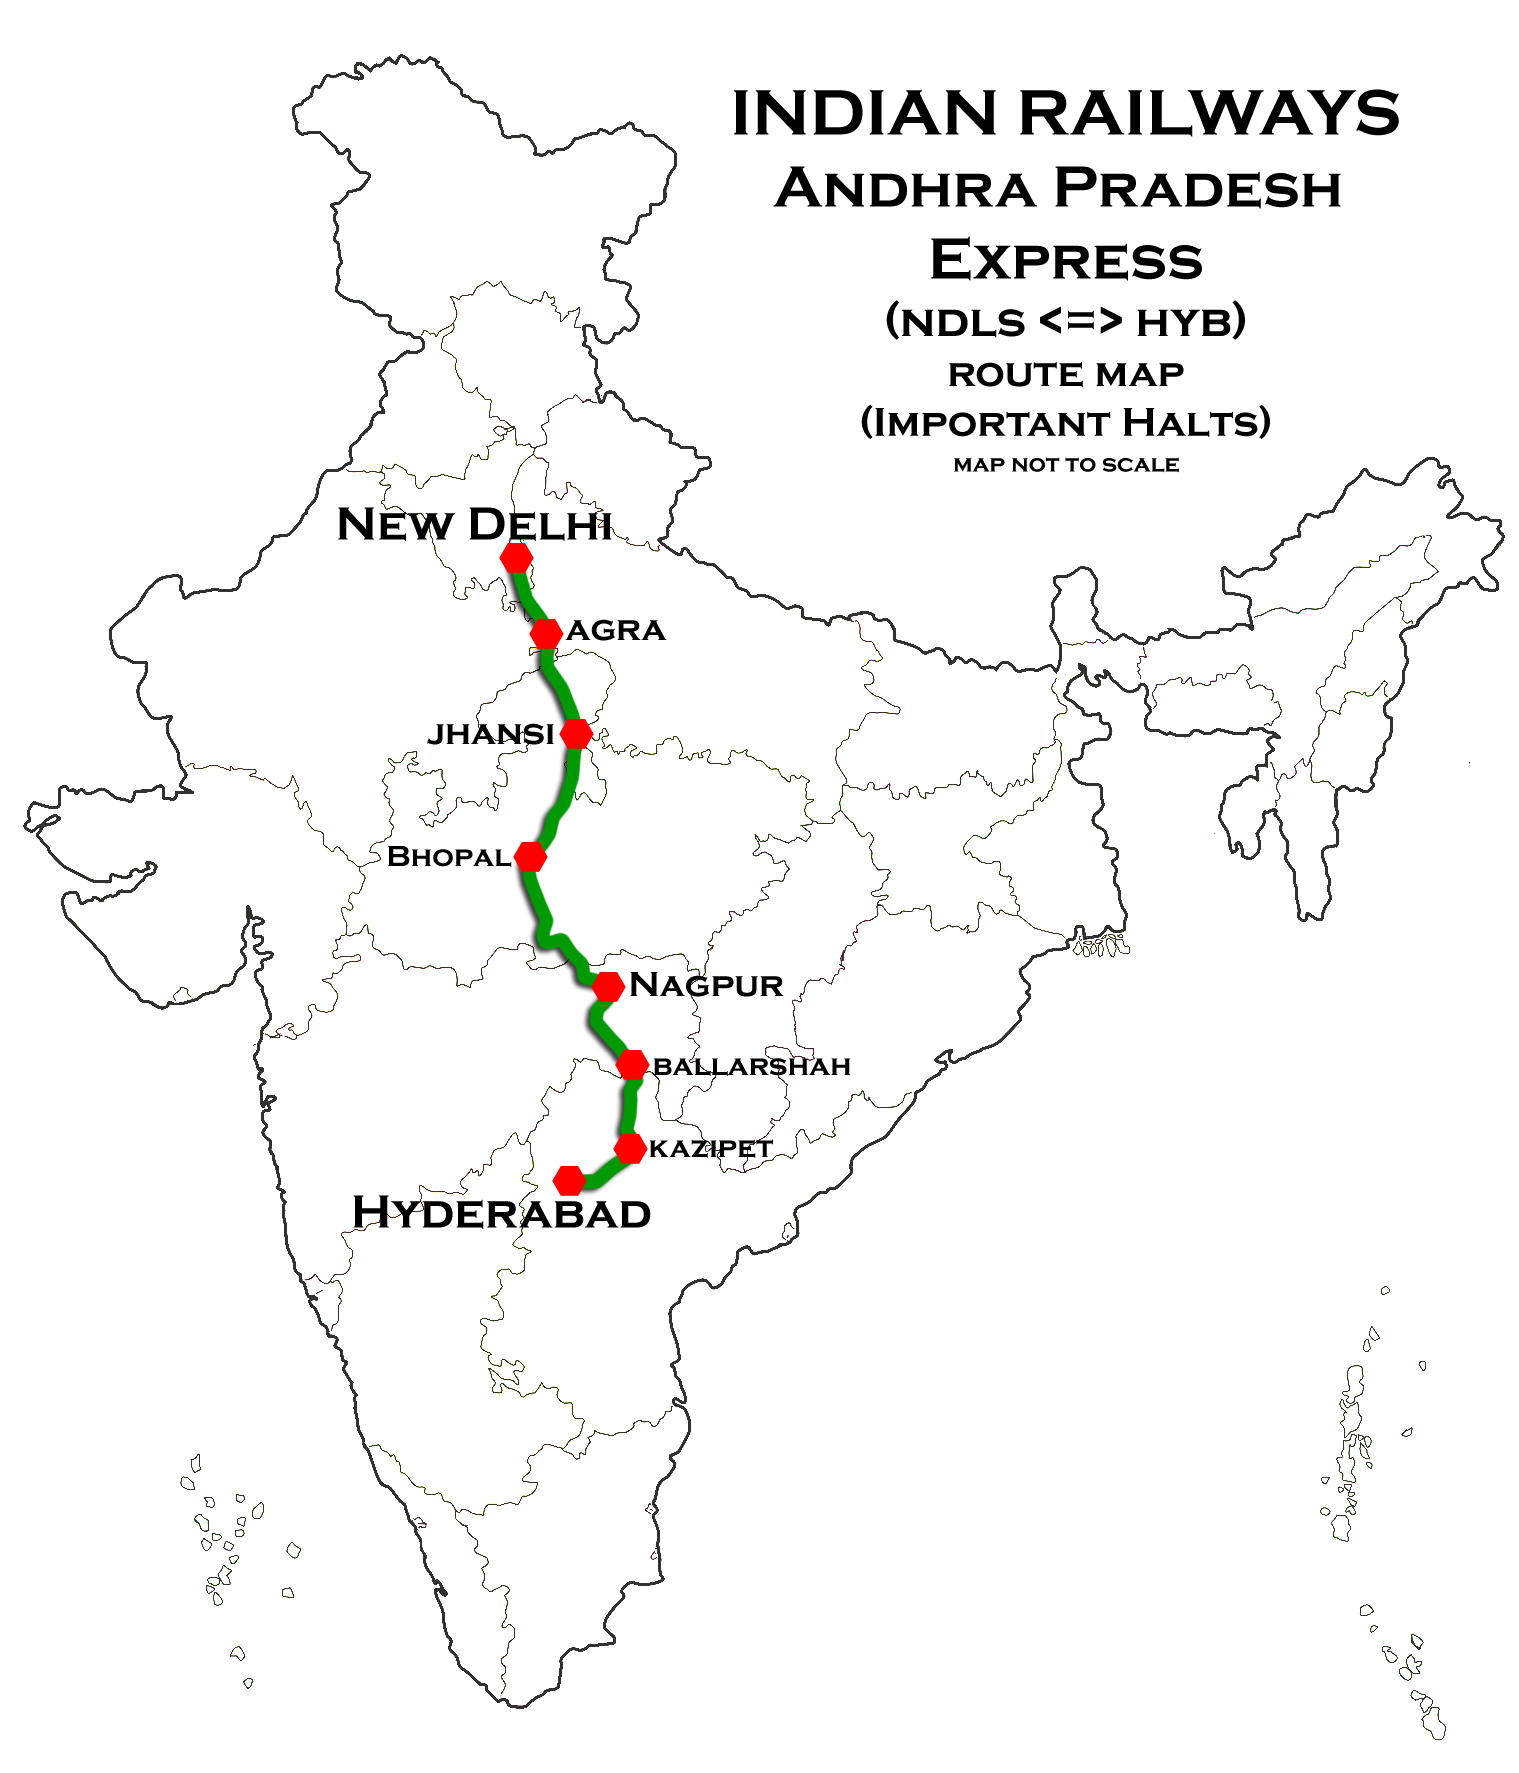 Andhra Pradesh (HYB-NDLS) Express Route map.jpg